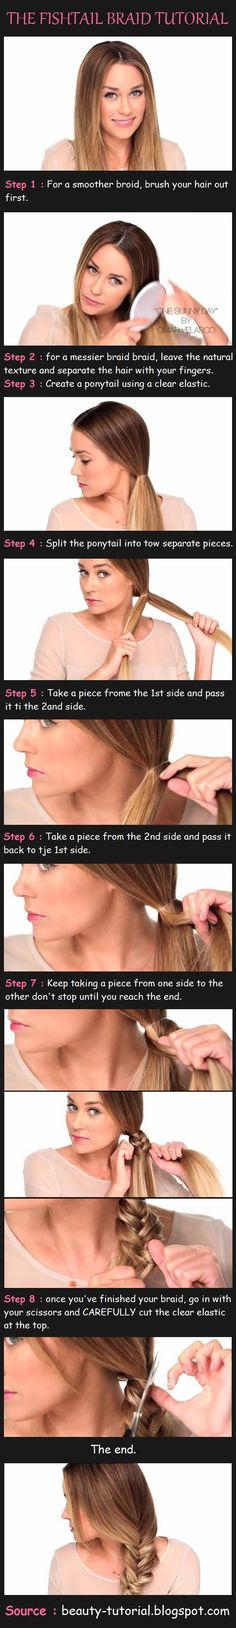 The Fishtail Braid Tutorial. Easy to follow, but the OCD in me is a little bothered by all the spelling errors/typos. lol ;)